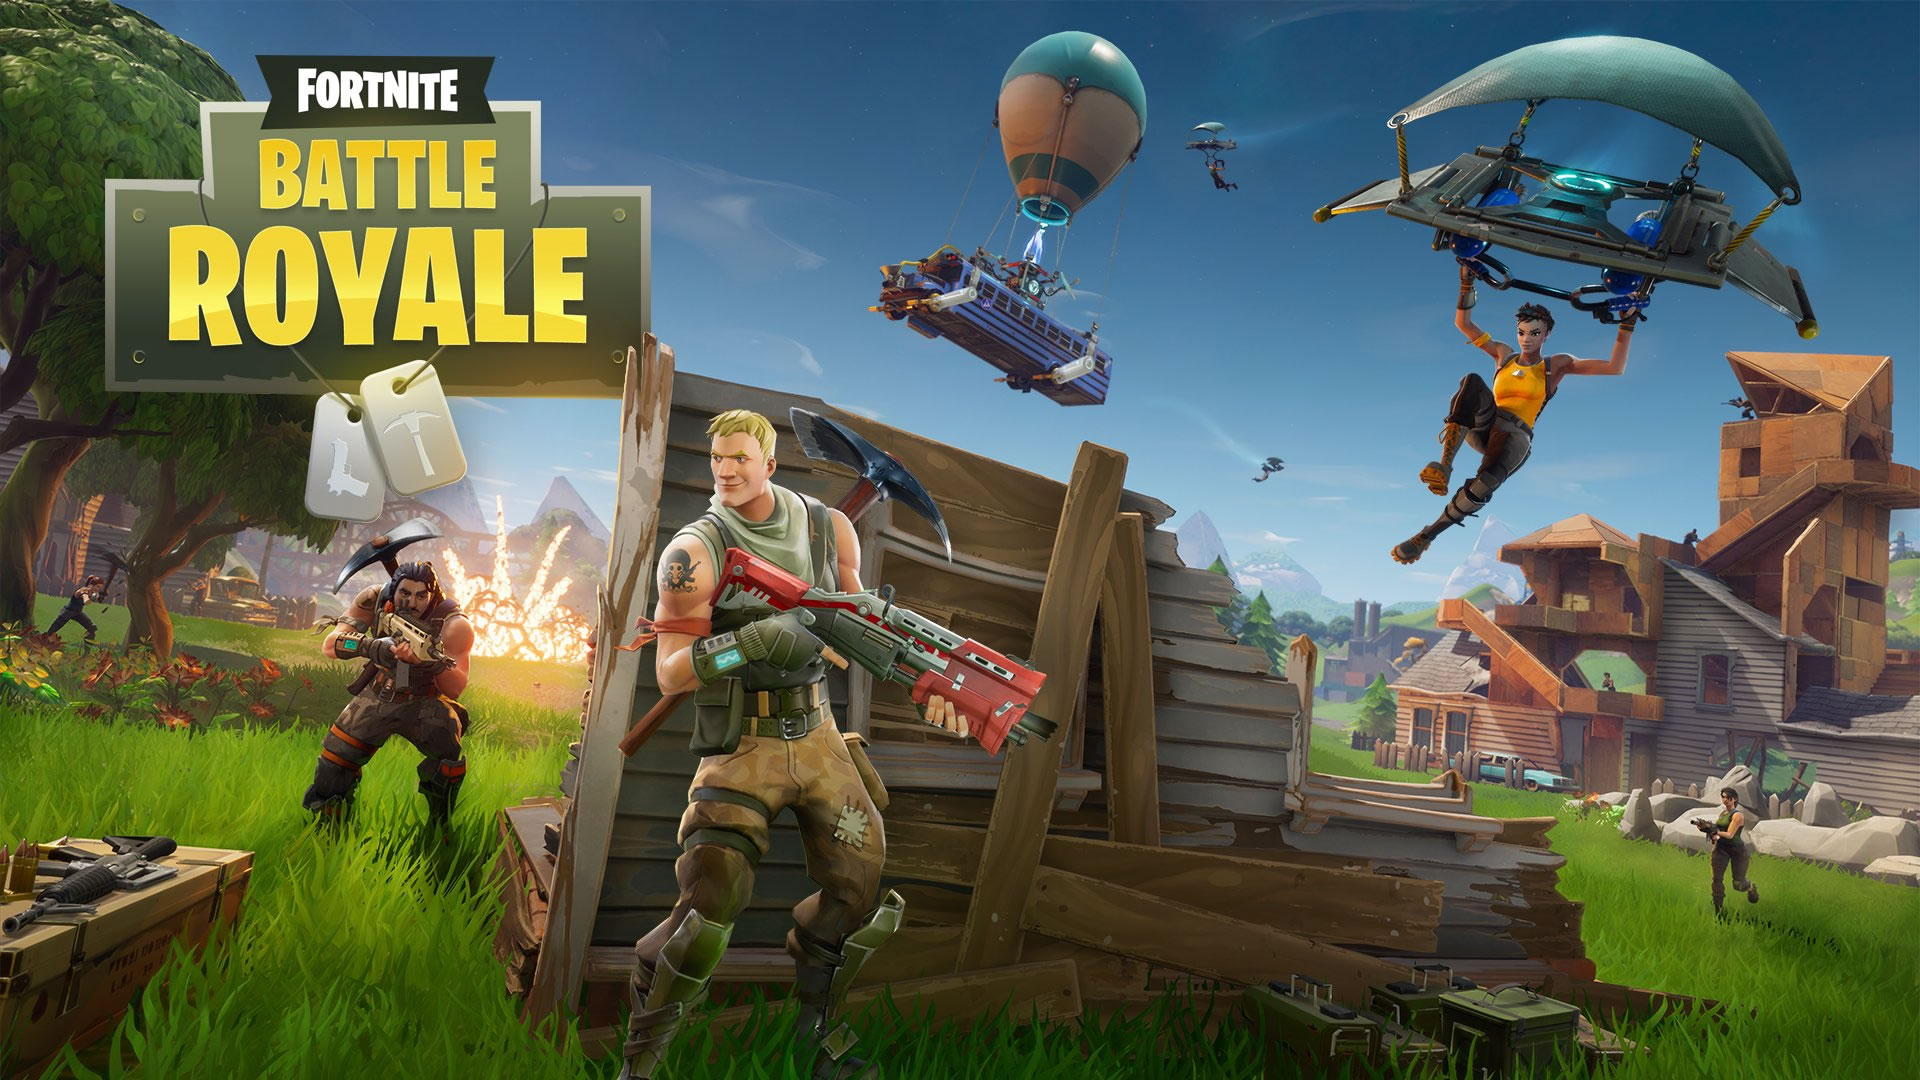 download Wallpaper: Fortnite Battle Royale wallpaper